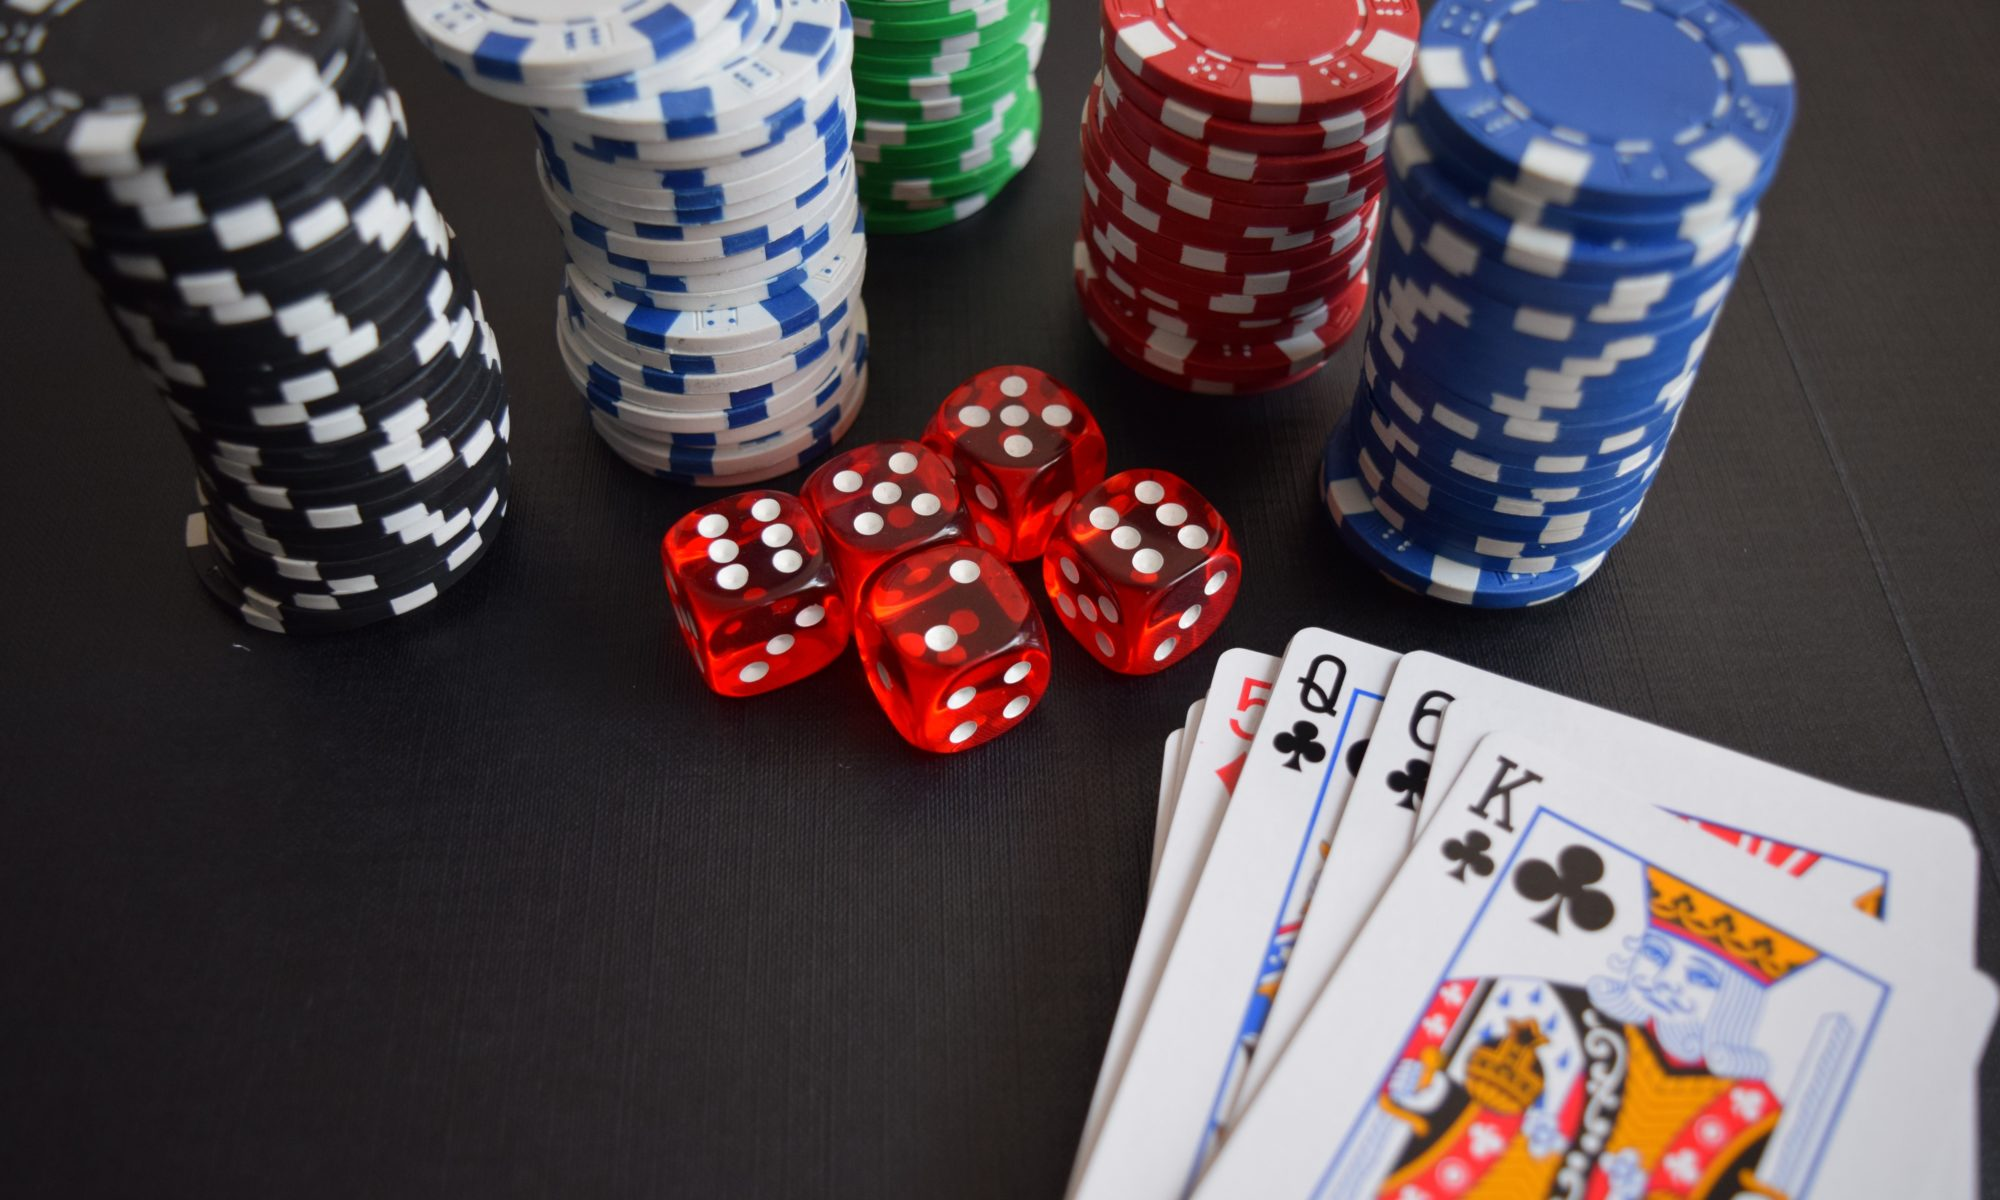 Bet-at-Home Passed a Supremely Optimal Q4 and Raised Its Earning Guidance